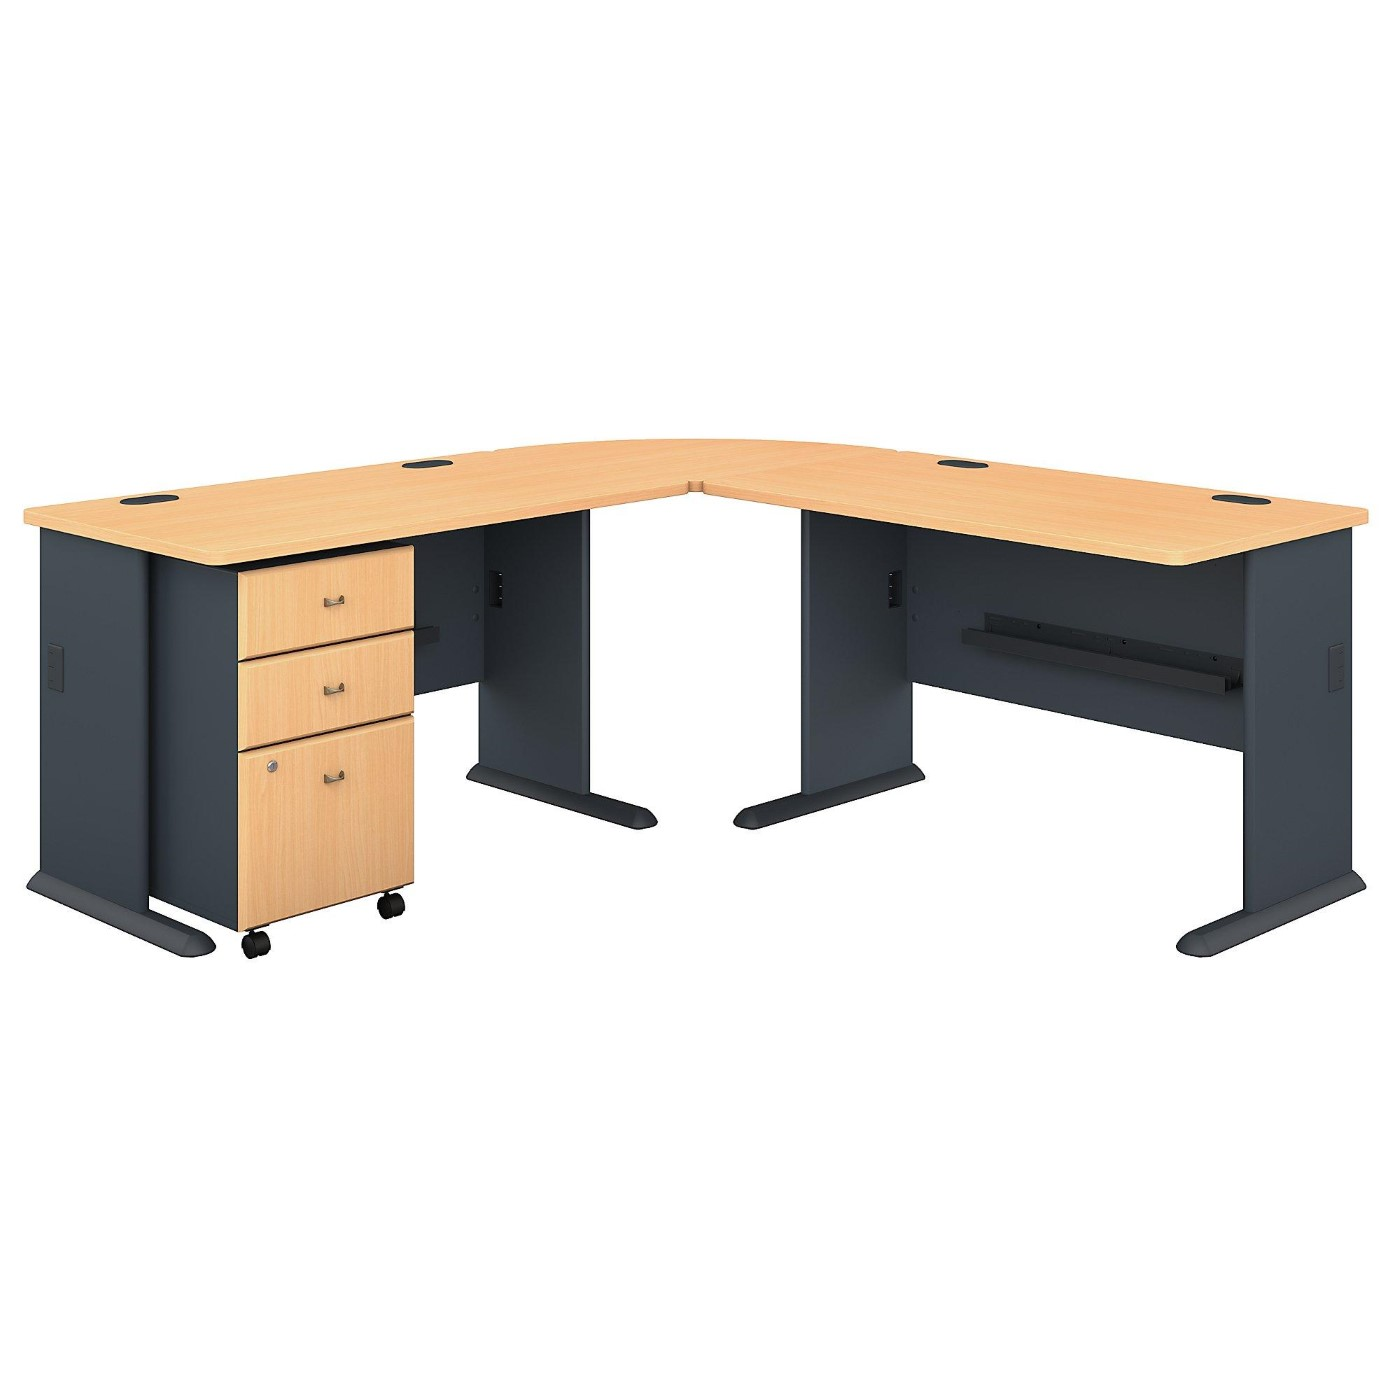 BUSH BUSINESS FURNITURE SERIES A 75W X 75D L SHAPED DESK WITH MOBILE FILE CABINET. FREE SHIPPING.